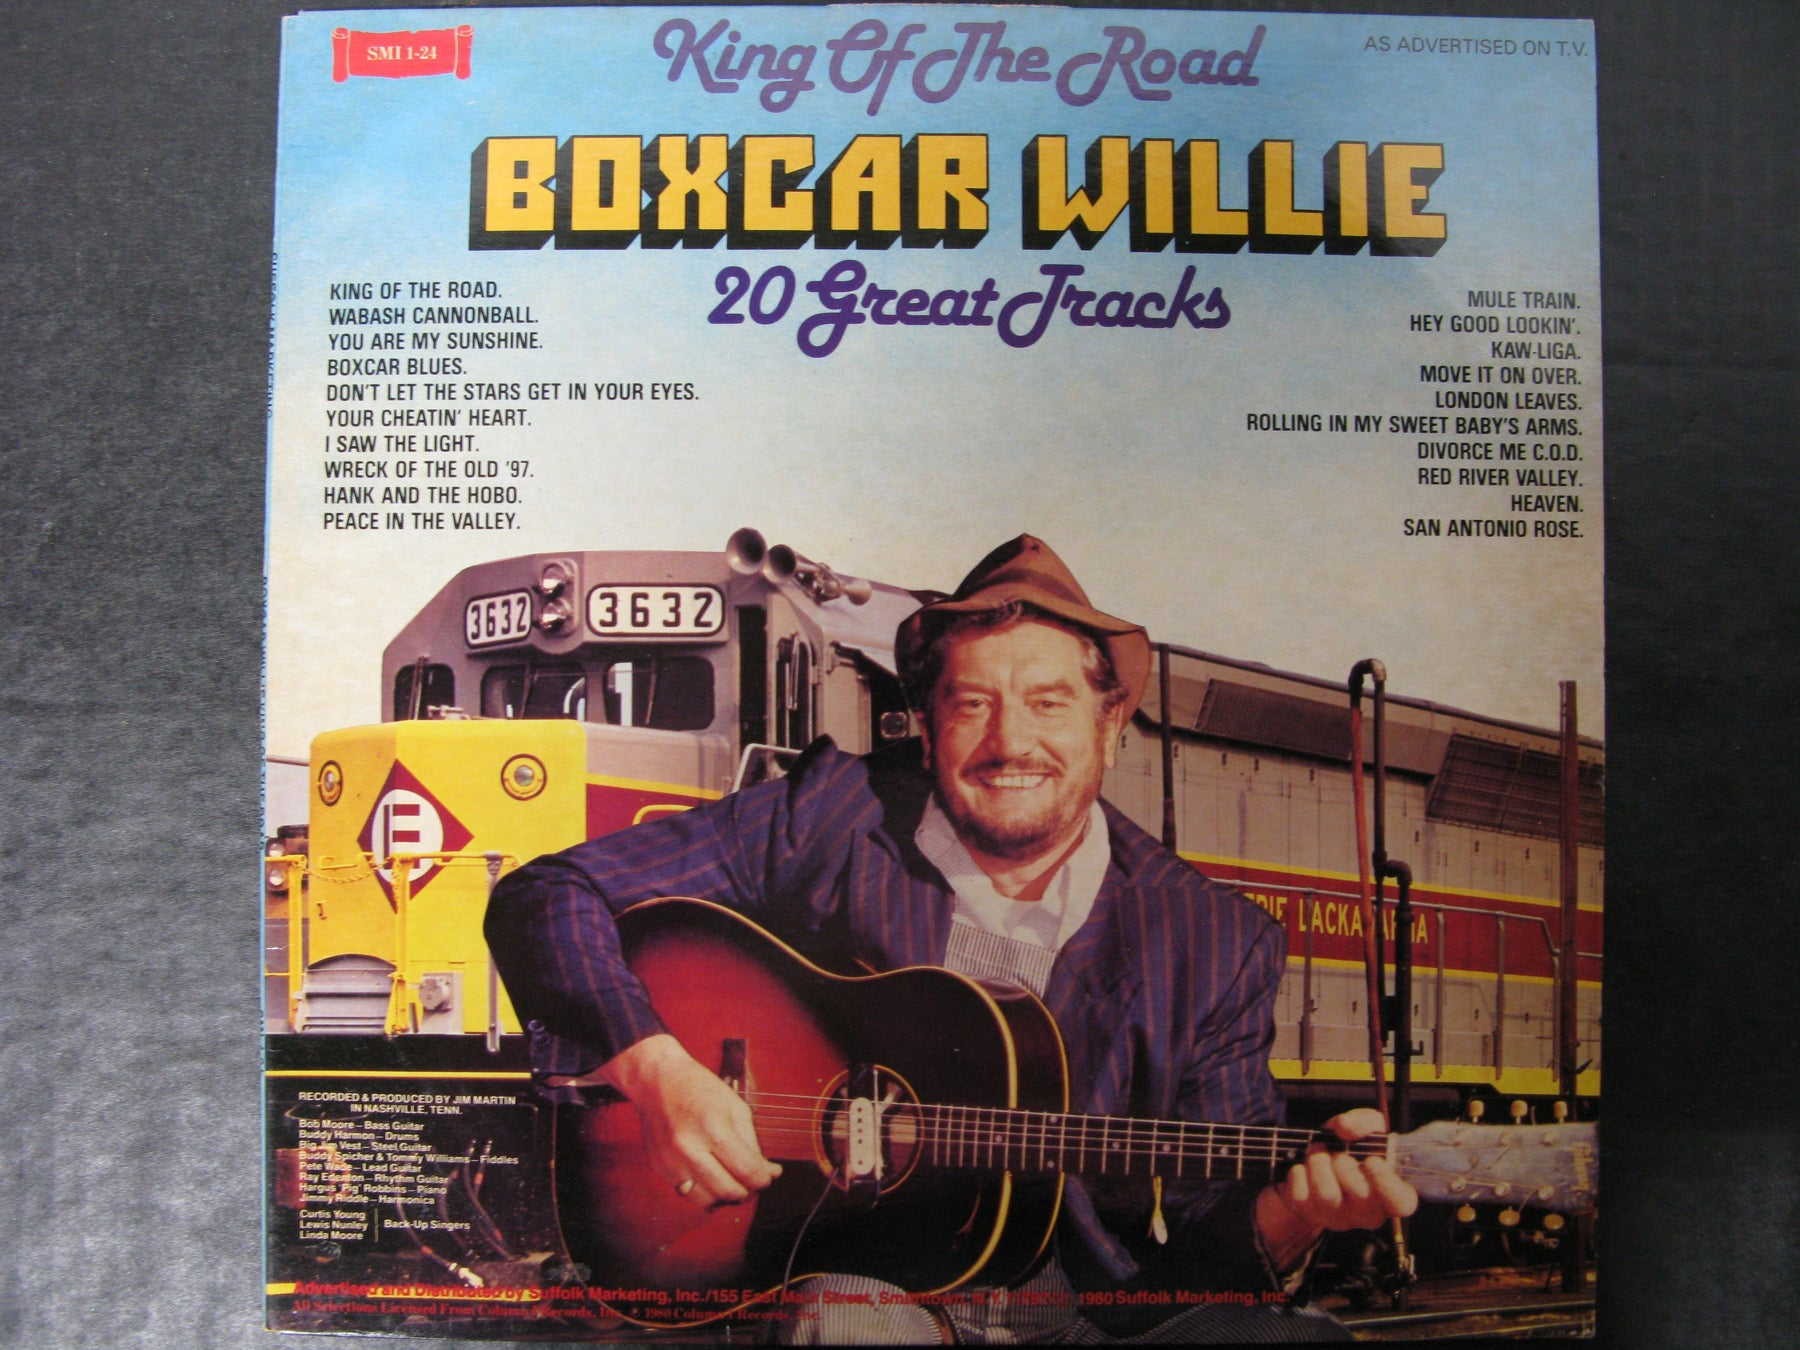 King of the Road Boxcar Willie 20 Great Tracks Vinyl Record